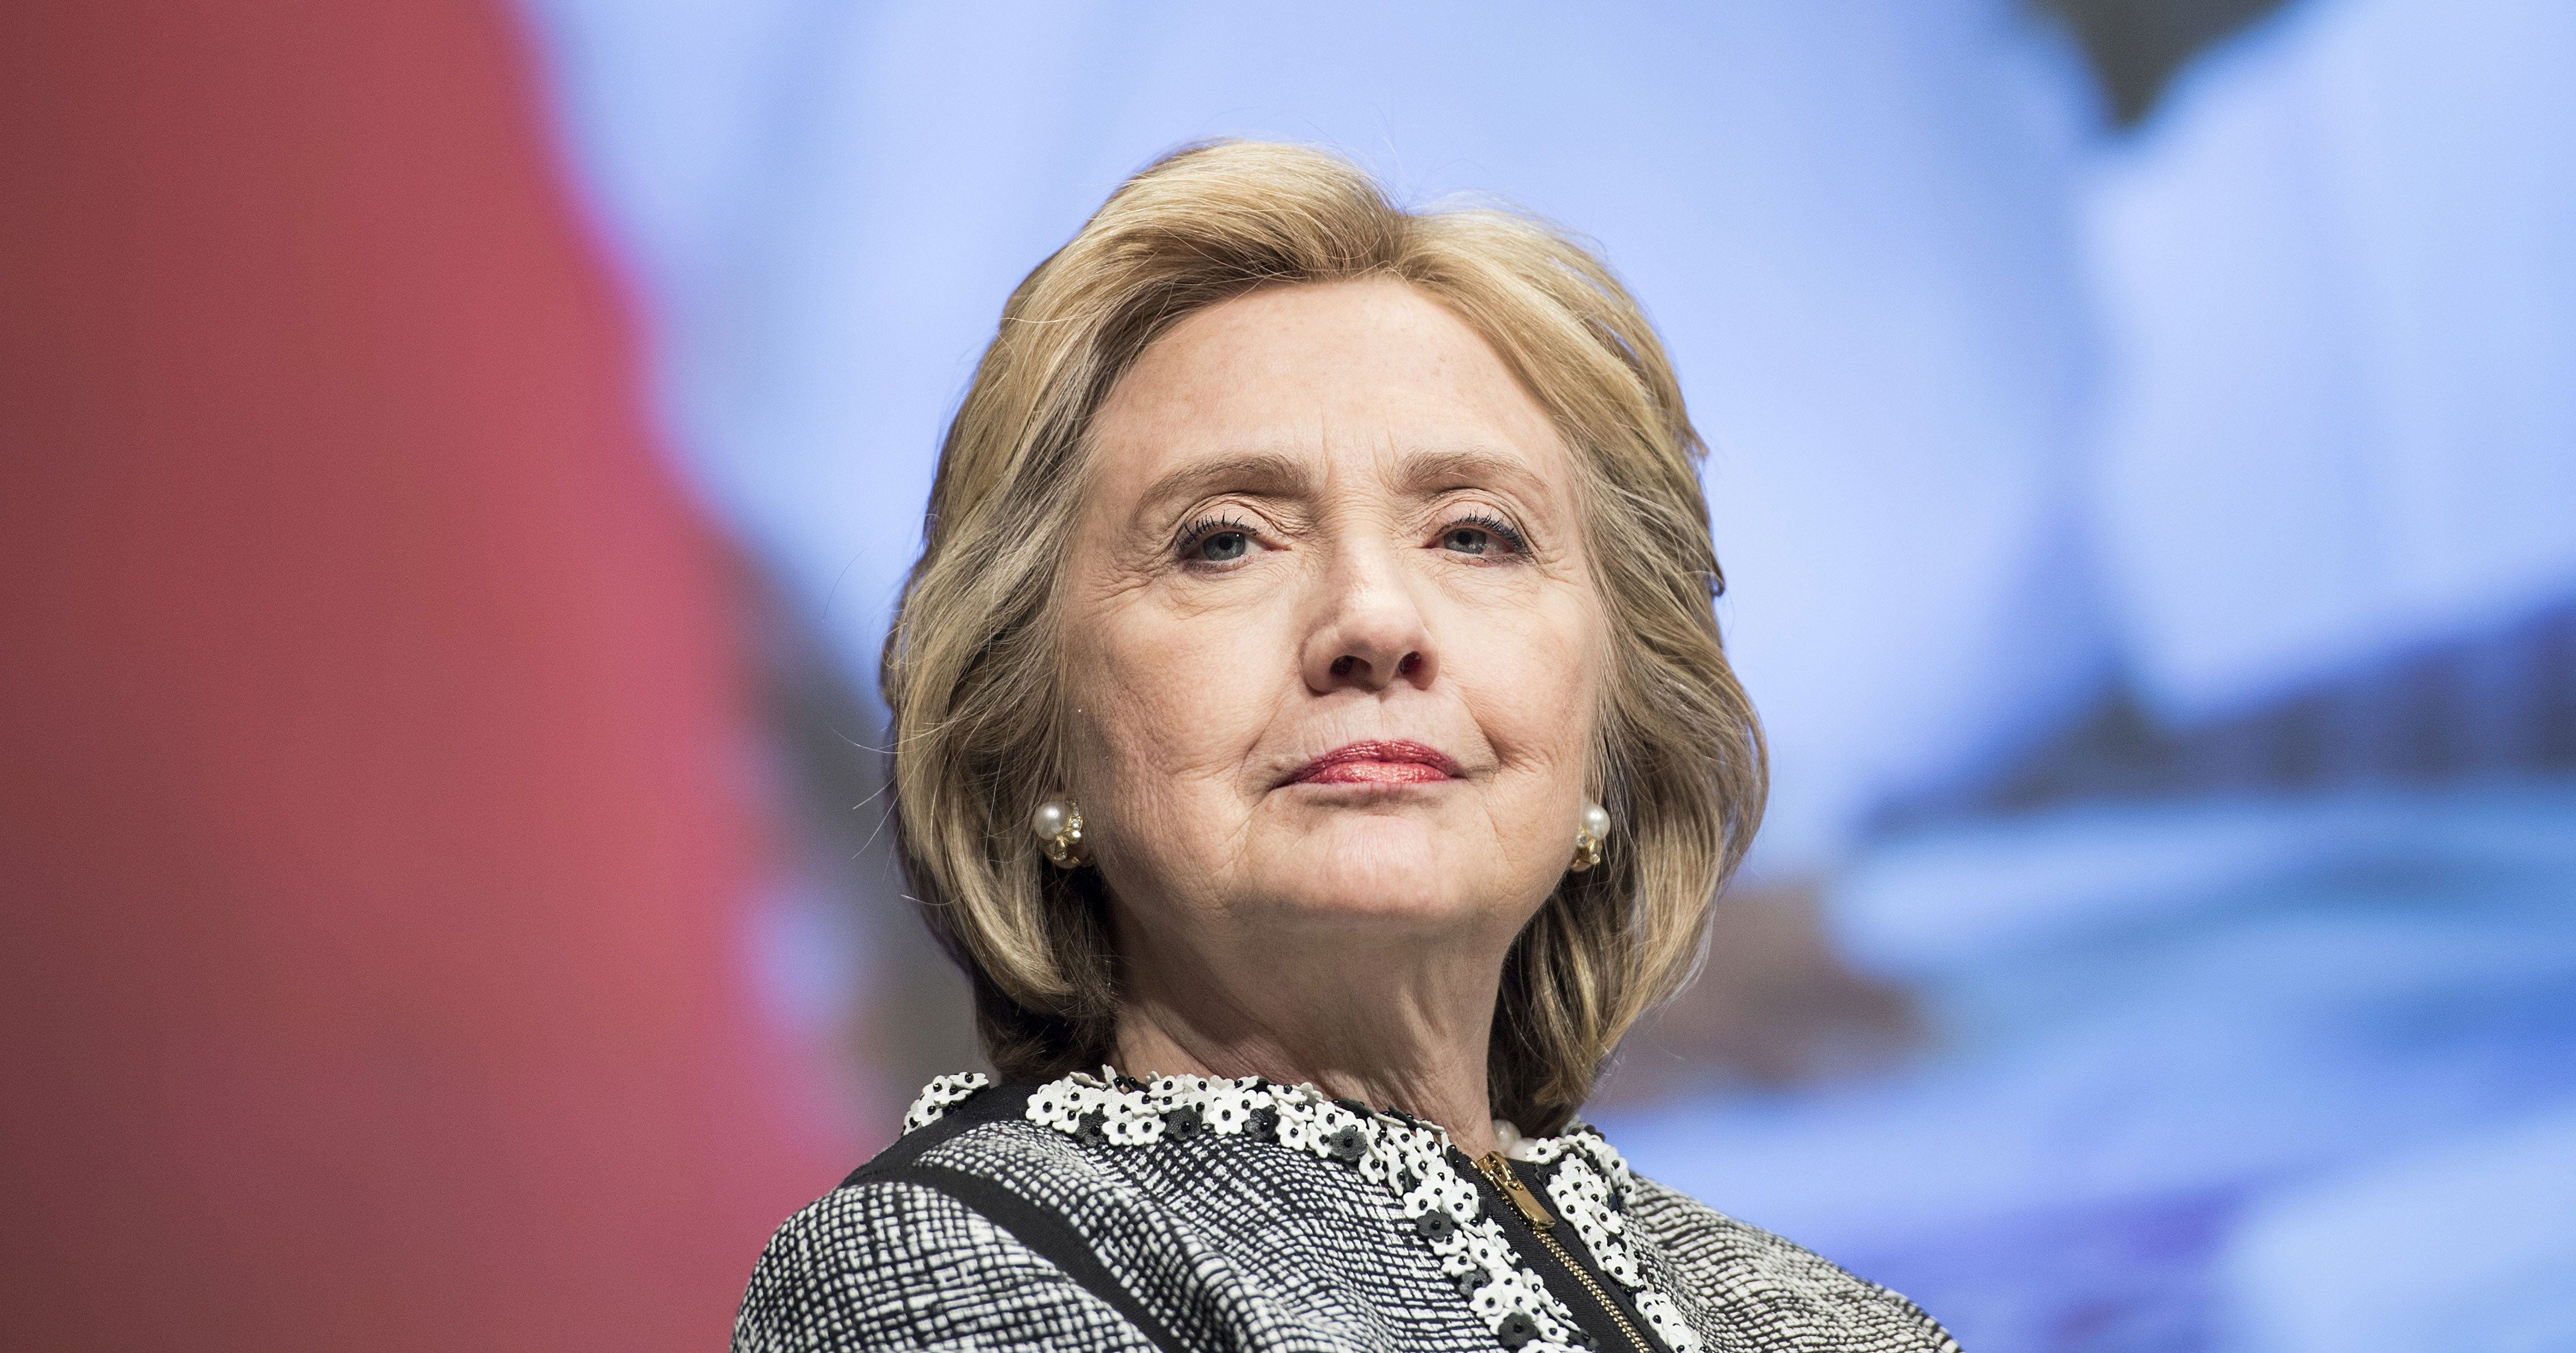 Tears, Gasps & Laughter: All The Sundance Reactions To The New Hillary Clinton Documentary